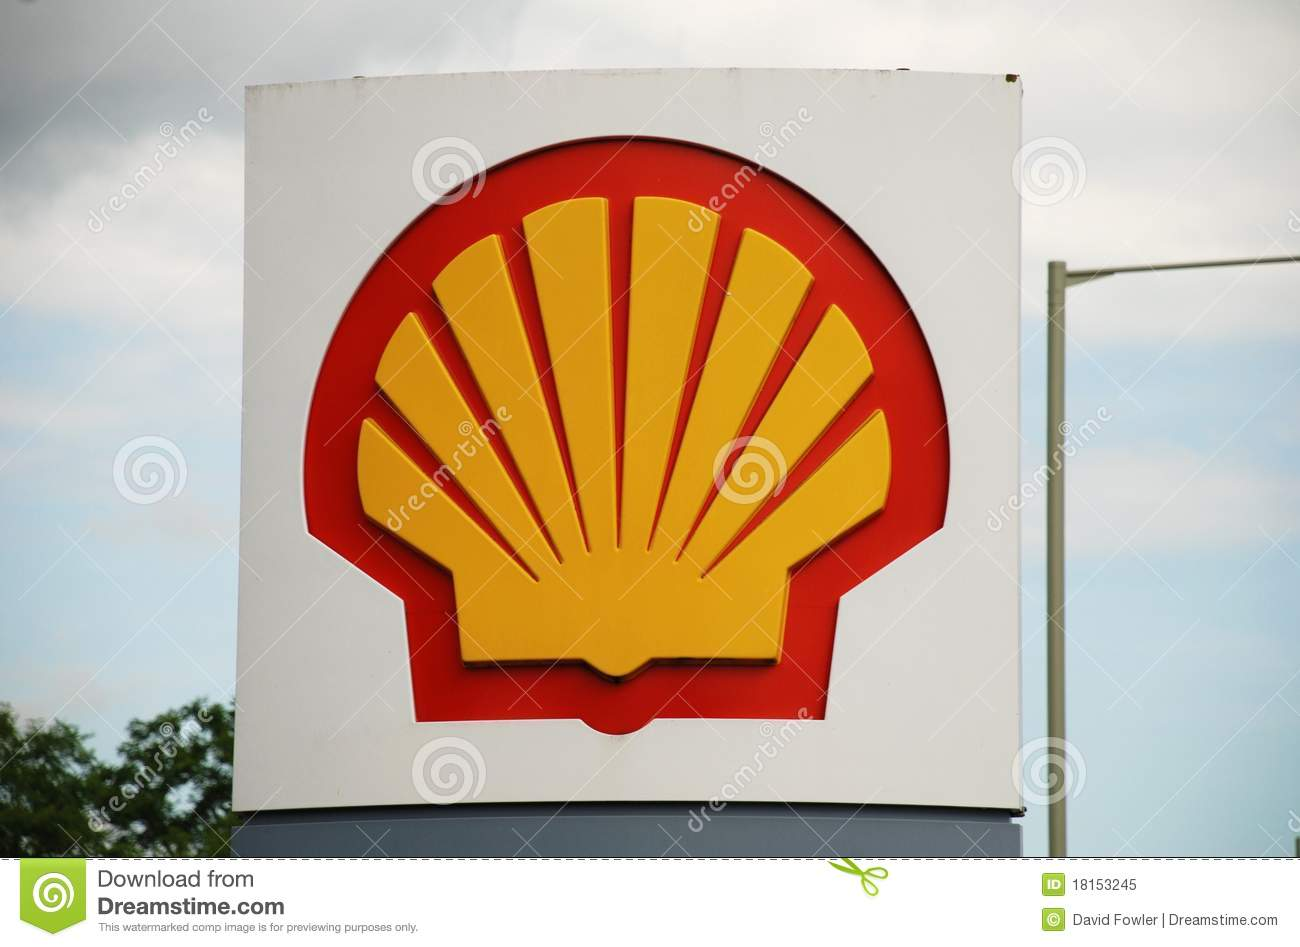 Shell petrol filling station